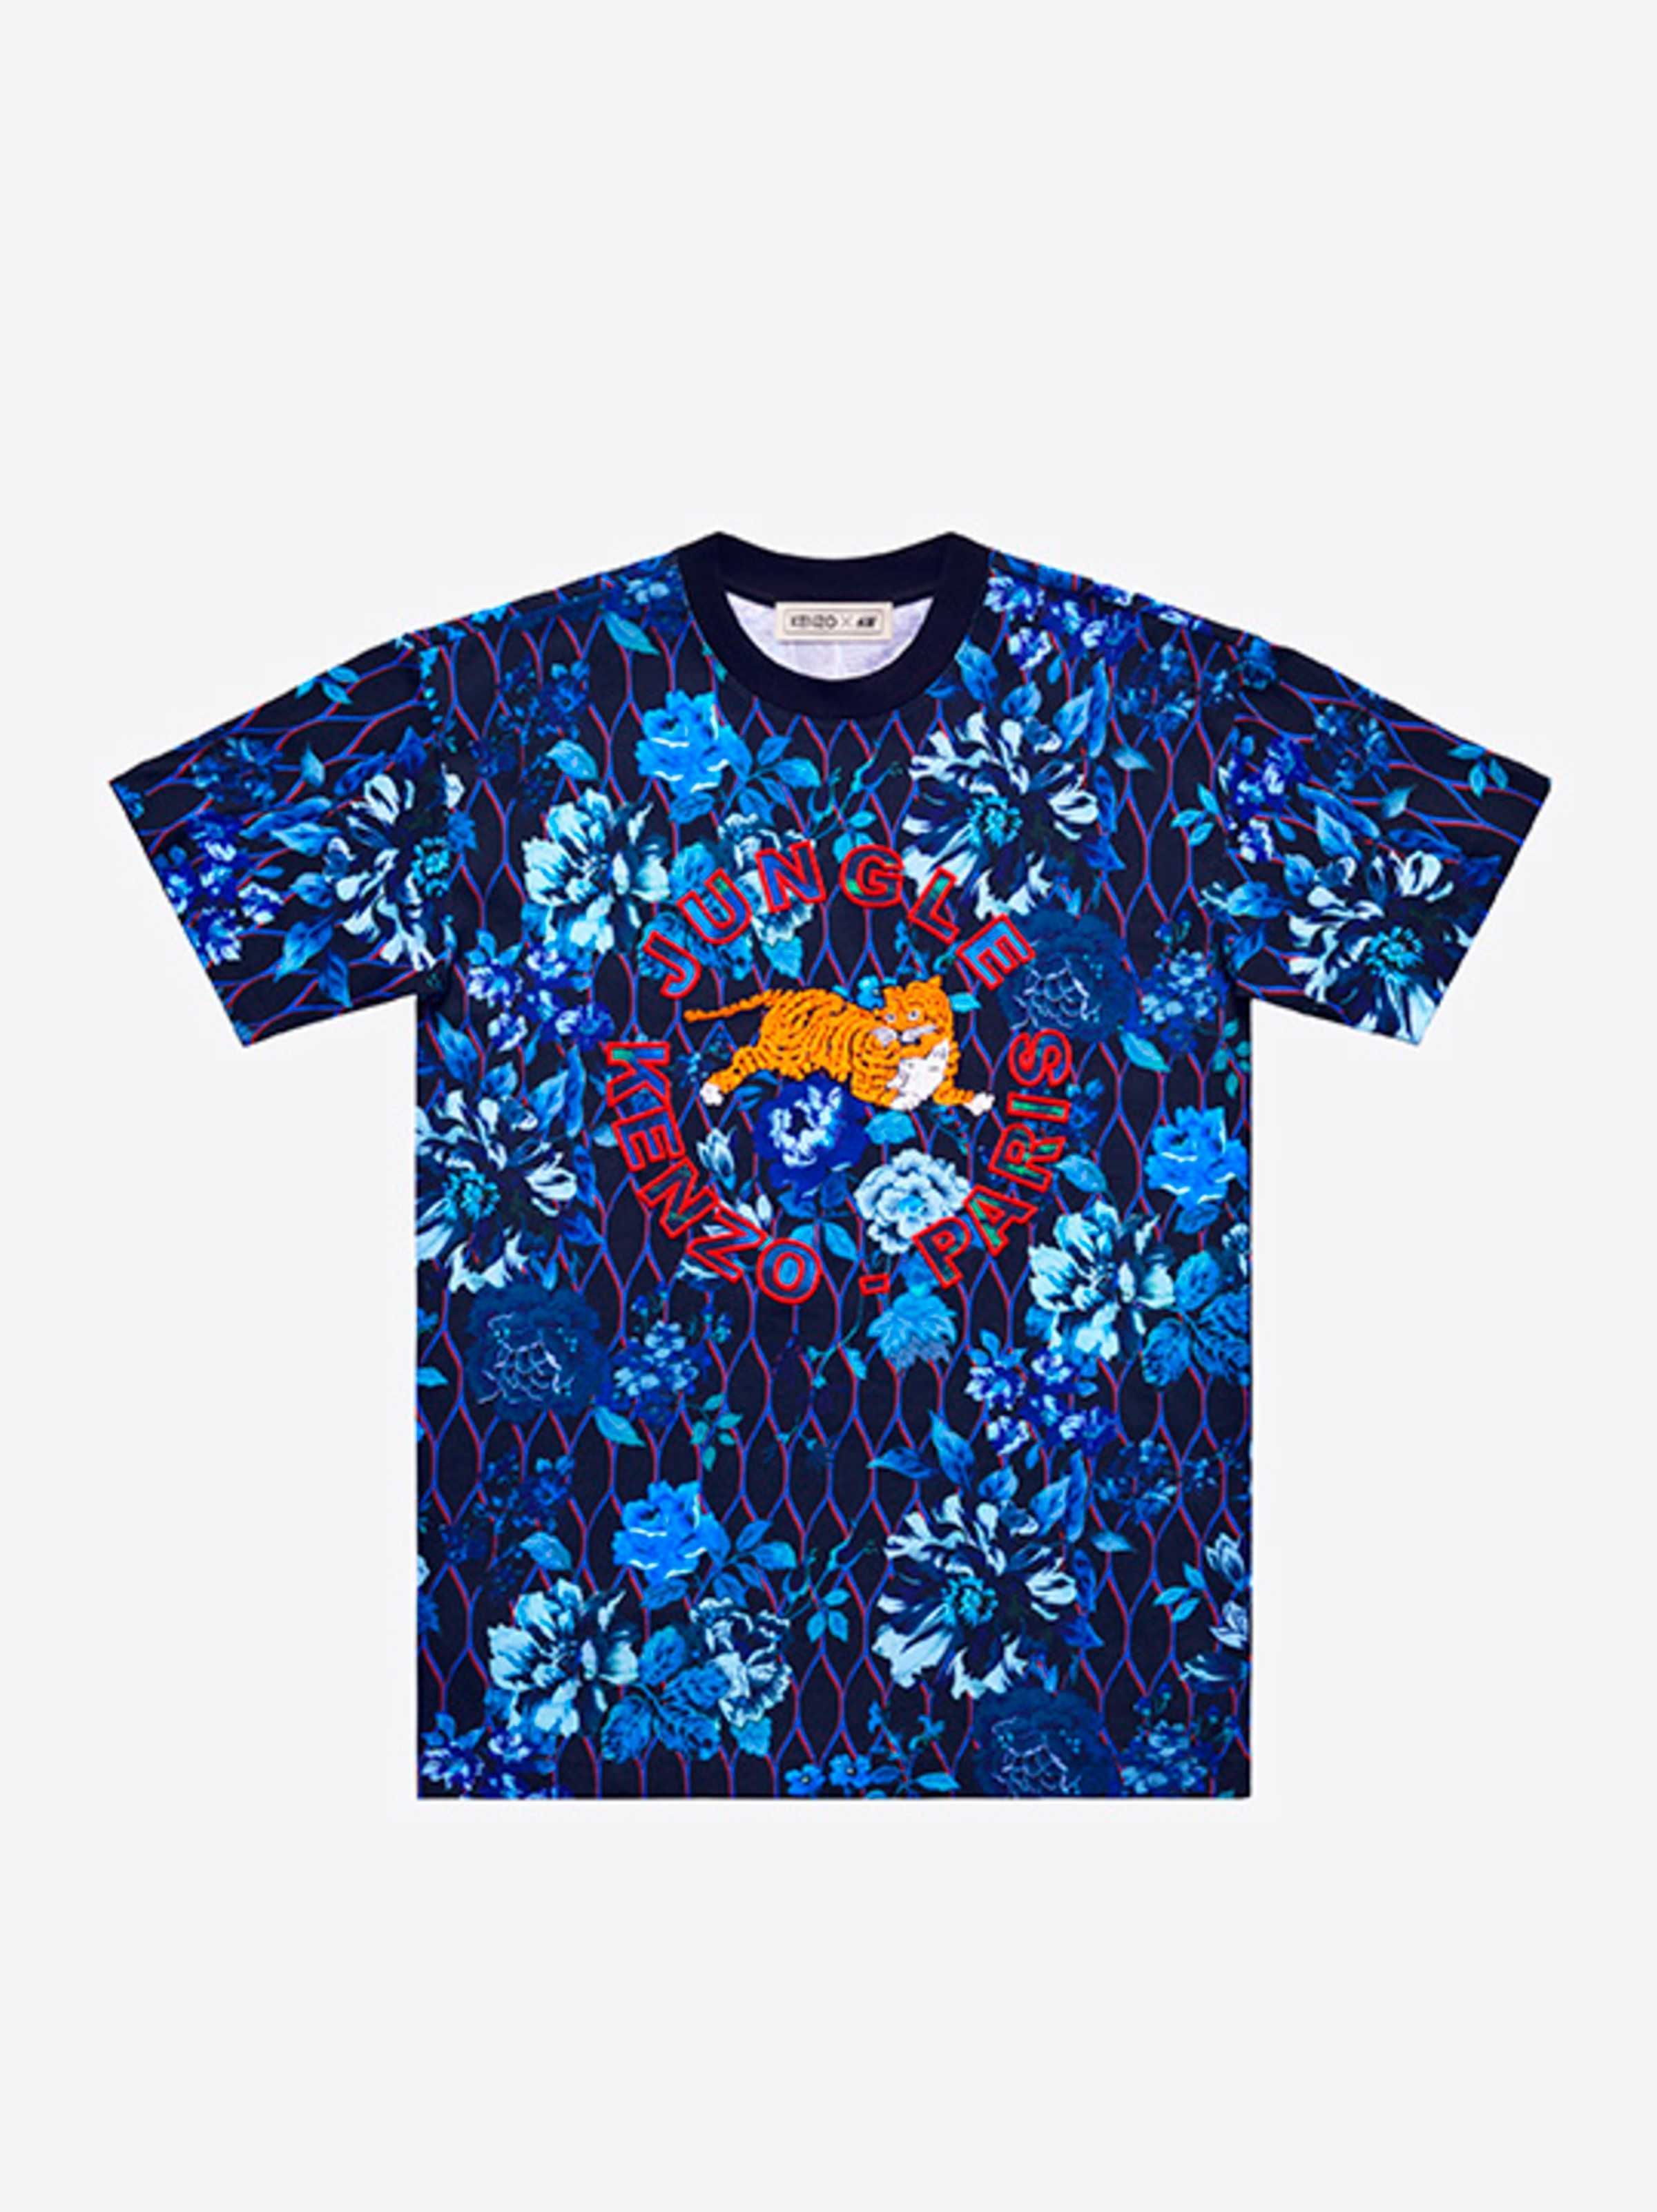 a98c98a066 Kenzo x H&M: See the Full Collection With Prices | Kenzo x H&M ...